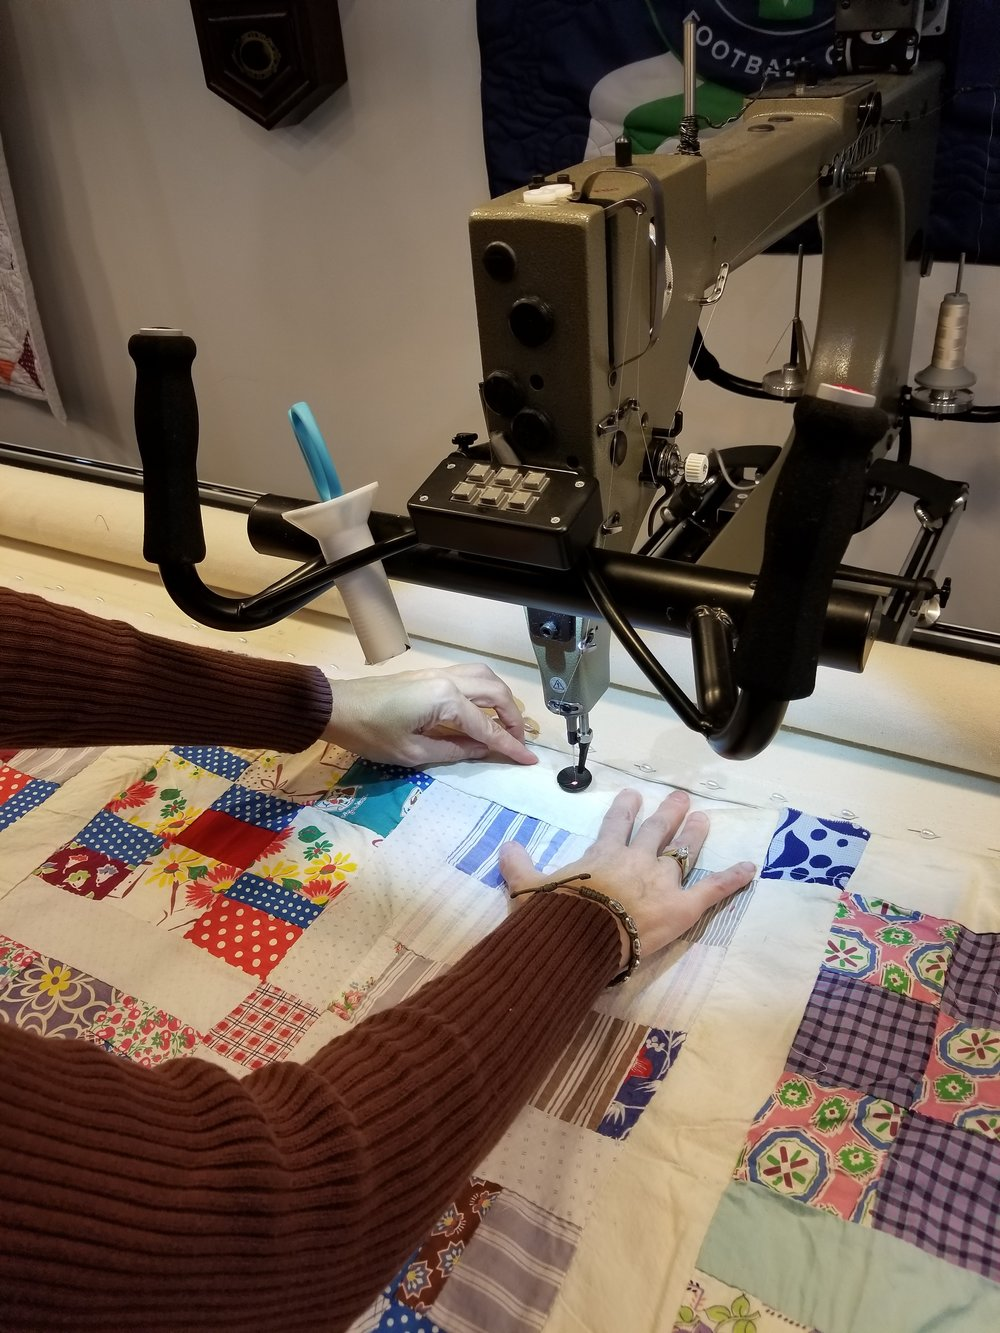 The top being basted so quilting can begin. Notice the variety of fabrics used to make the blocks.